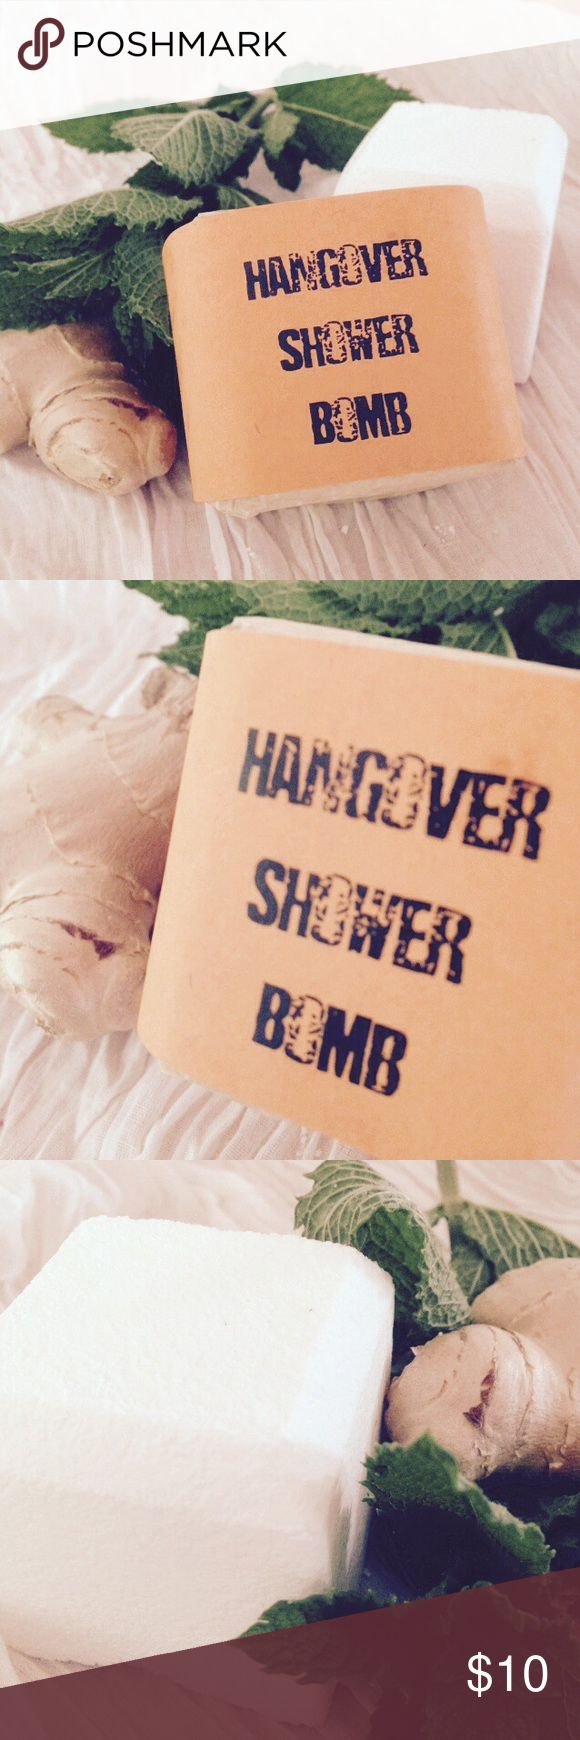 Hangover Shower Bombs - Set of 3 Simply drop the shower bomb into the water stream away from the drain and allow the steam to carry the healing and revitalizing essential oils into the air to ease your hangover gently.   With lavender, peppermint, eucalyptus and ginger essential oils, your headache and nausea will fade away. Juniper Other